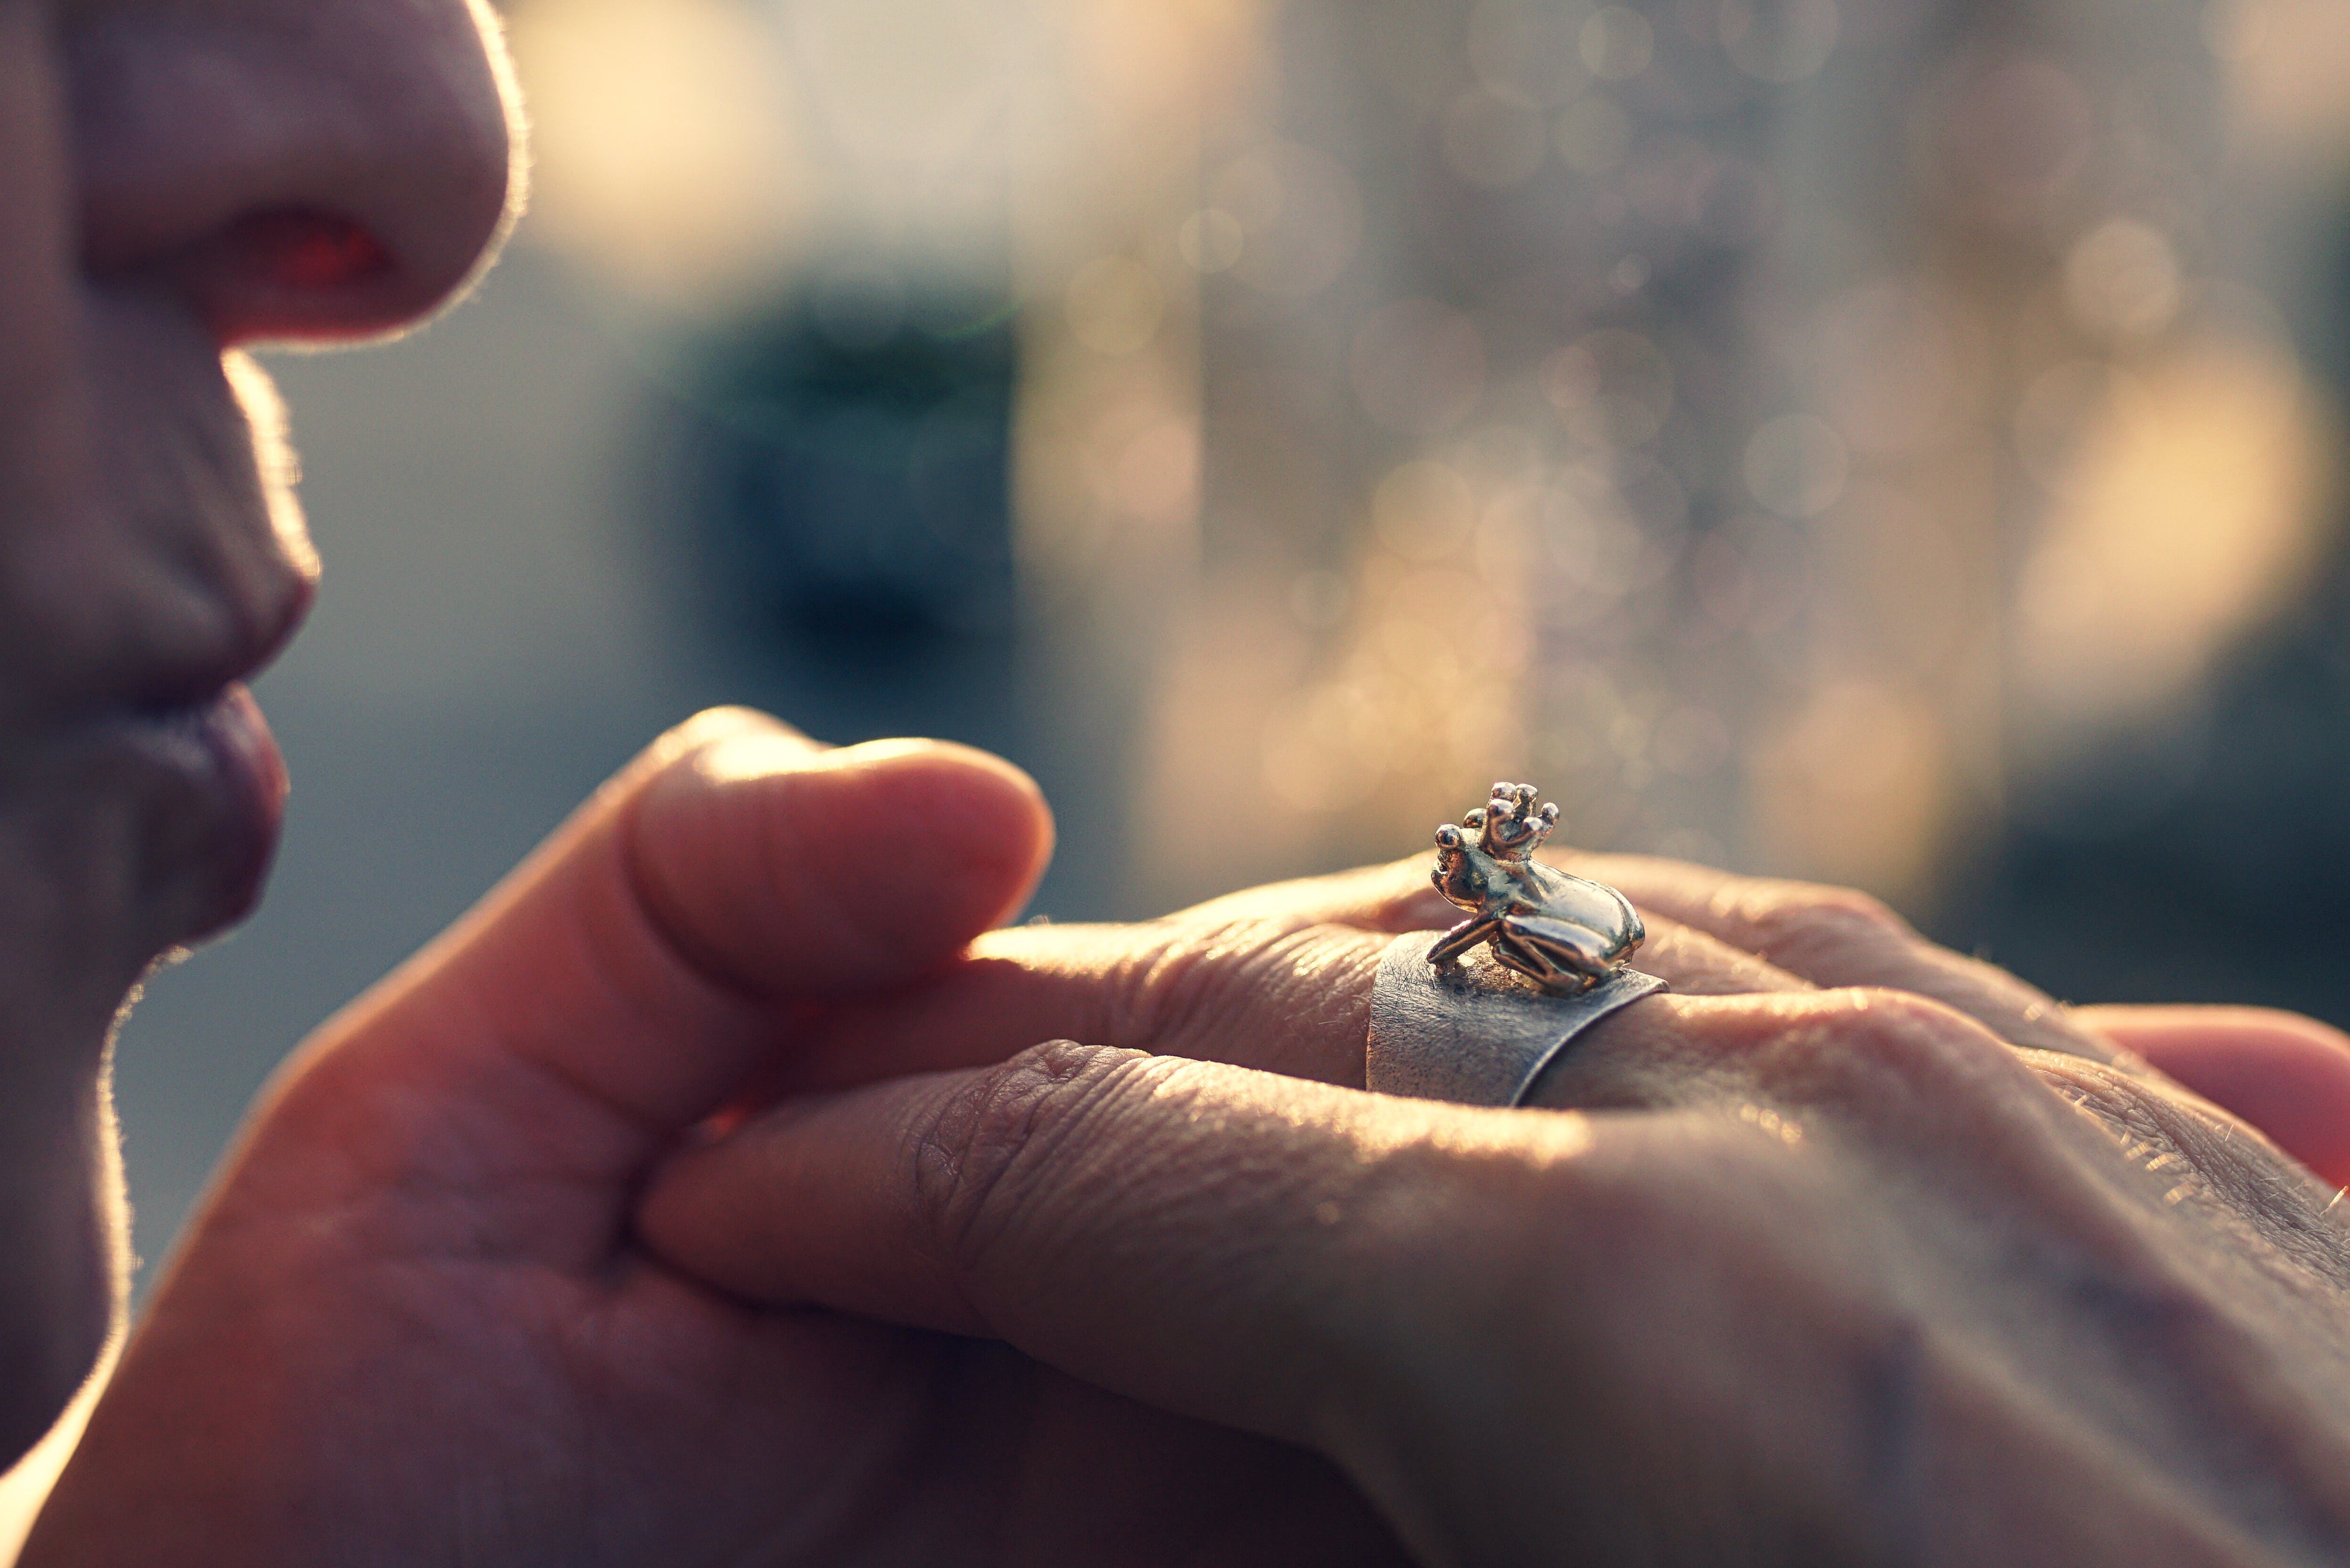 Close-Up Photography of Hands With Ring